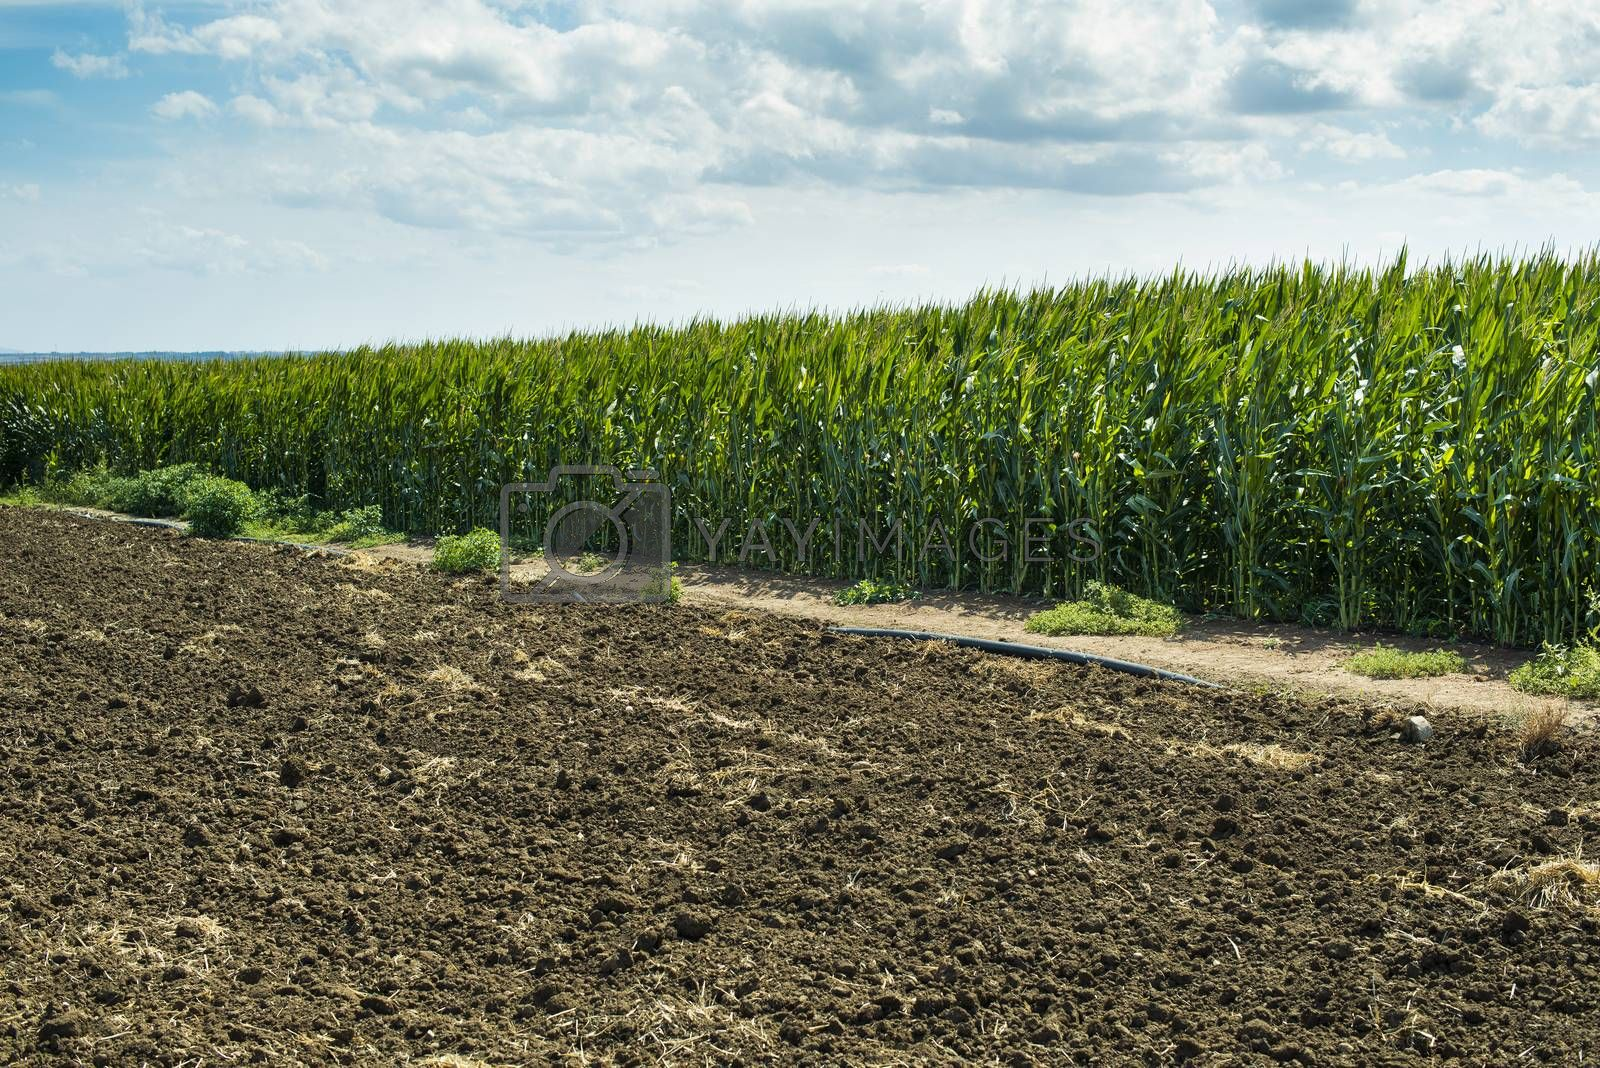 Plowed soil and plantations with corn in the background. Agriculture corn farm.